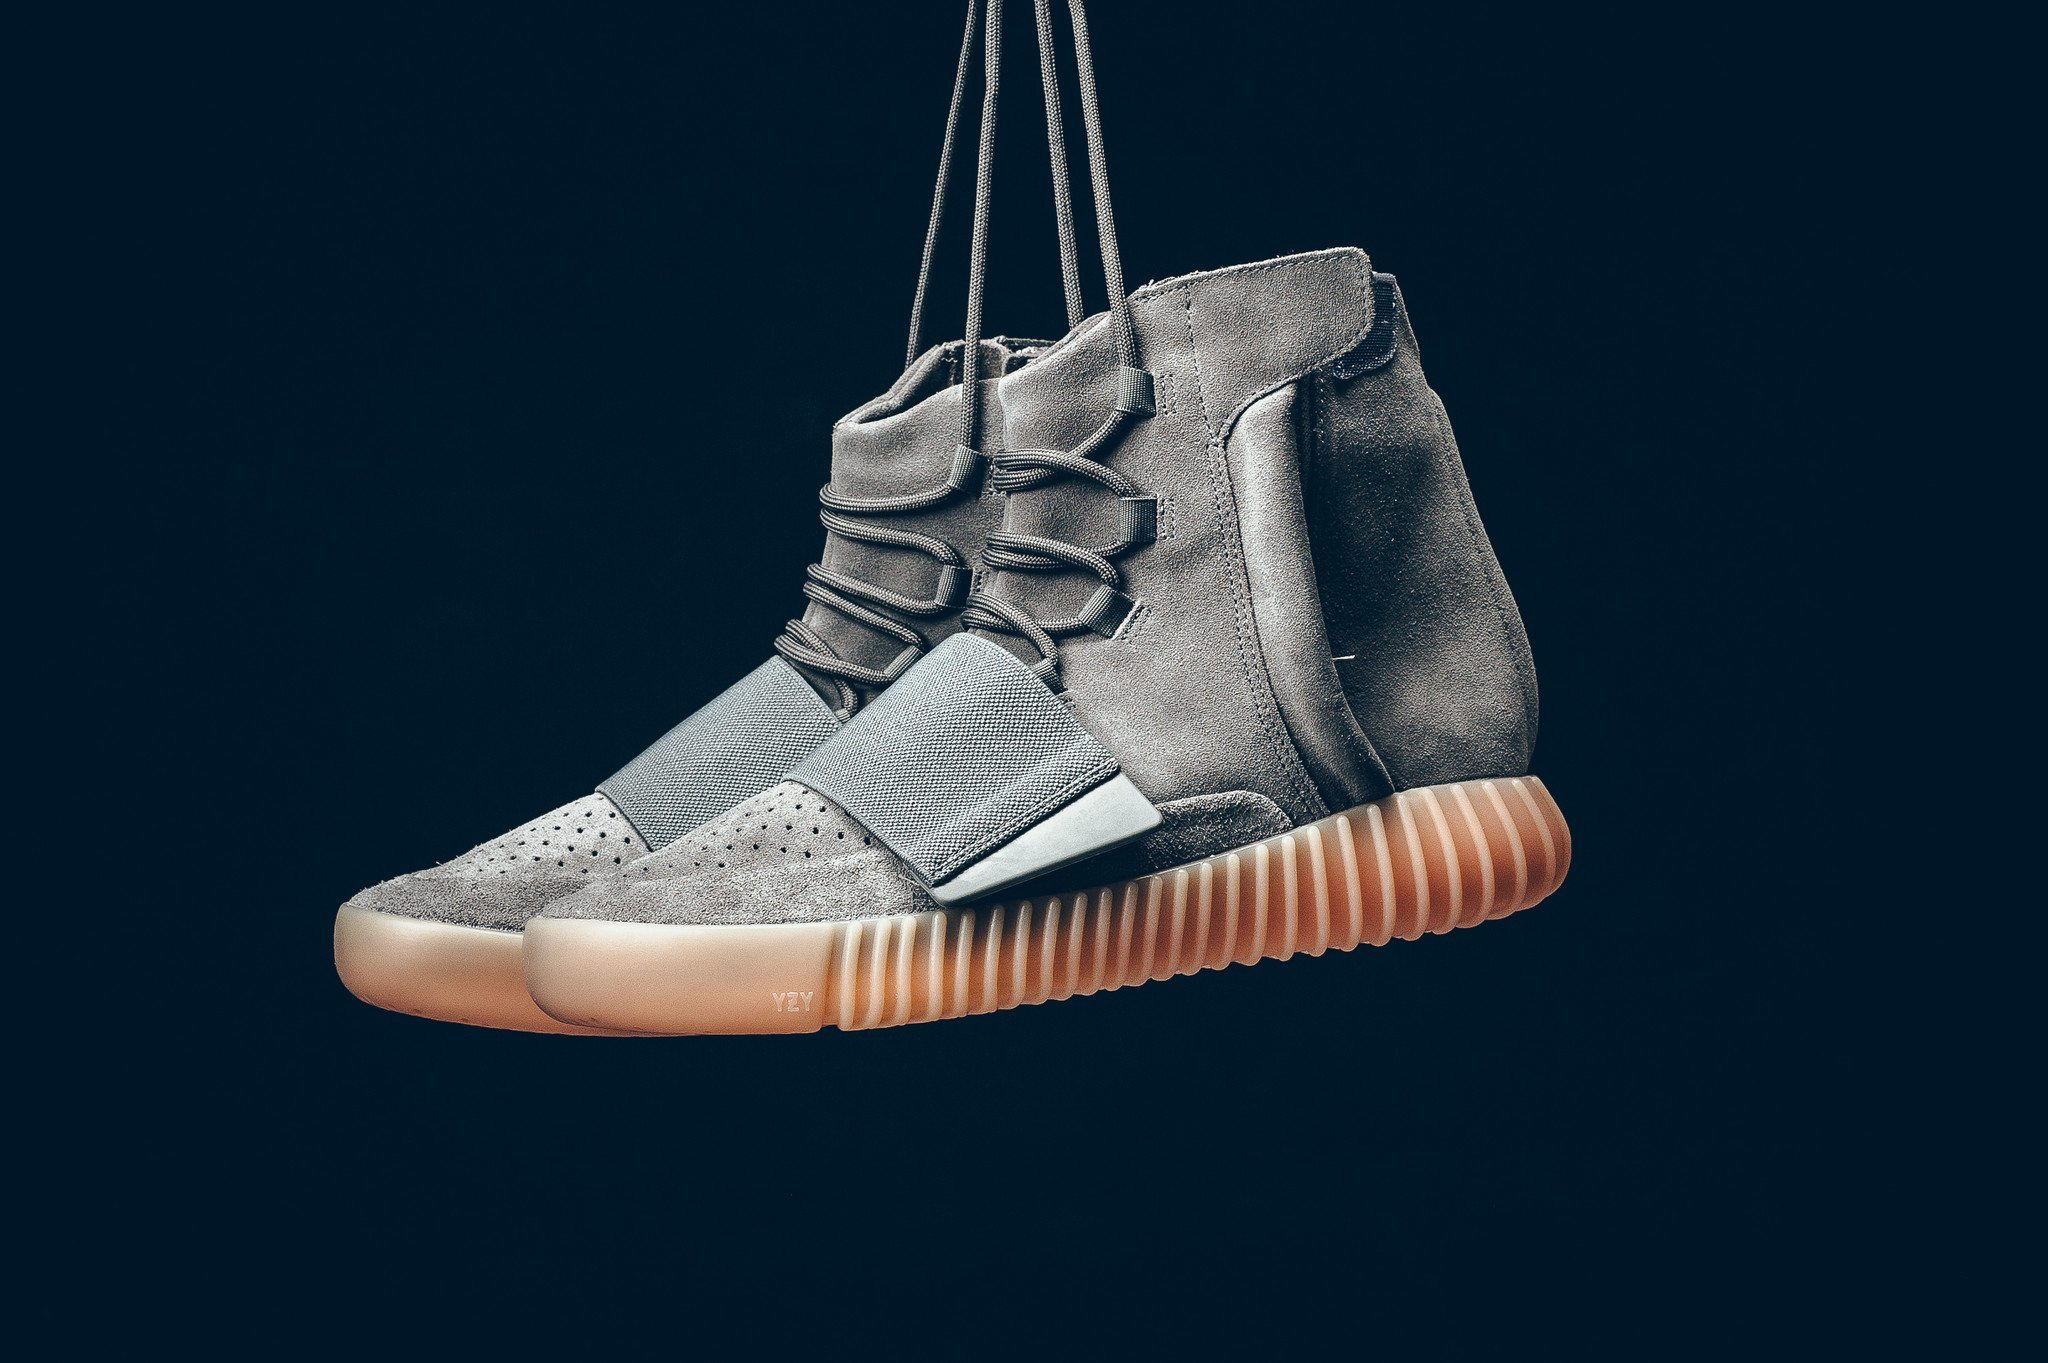 adidas Yeezy Boost 750 Light Grey 5